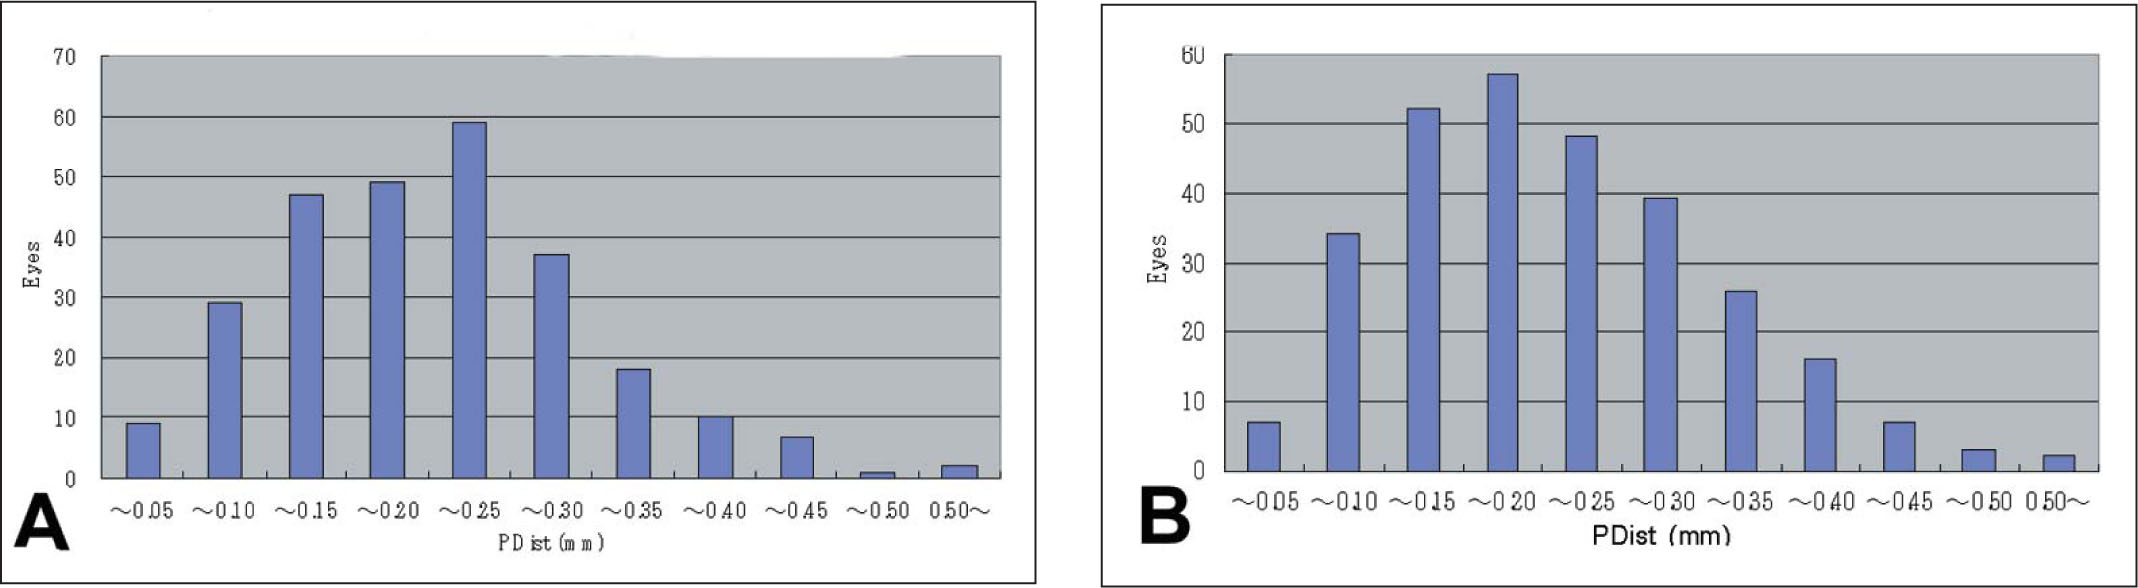 Histograms of the Preoperative Distance Between the Coaxially Sighted Corneal Vertex and the Pupil Center (P-Dist) Measured by the OPD-Scan for Eyes that Underwent Myopic Excimer Ablation Centered on the A) Coaxially Sighted Corneal Light Reflex and B) Line of Sight.